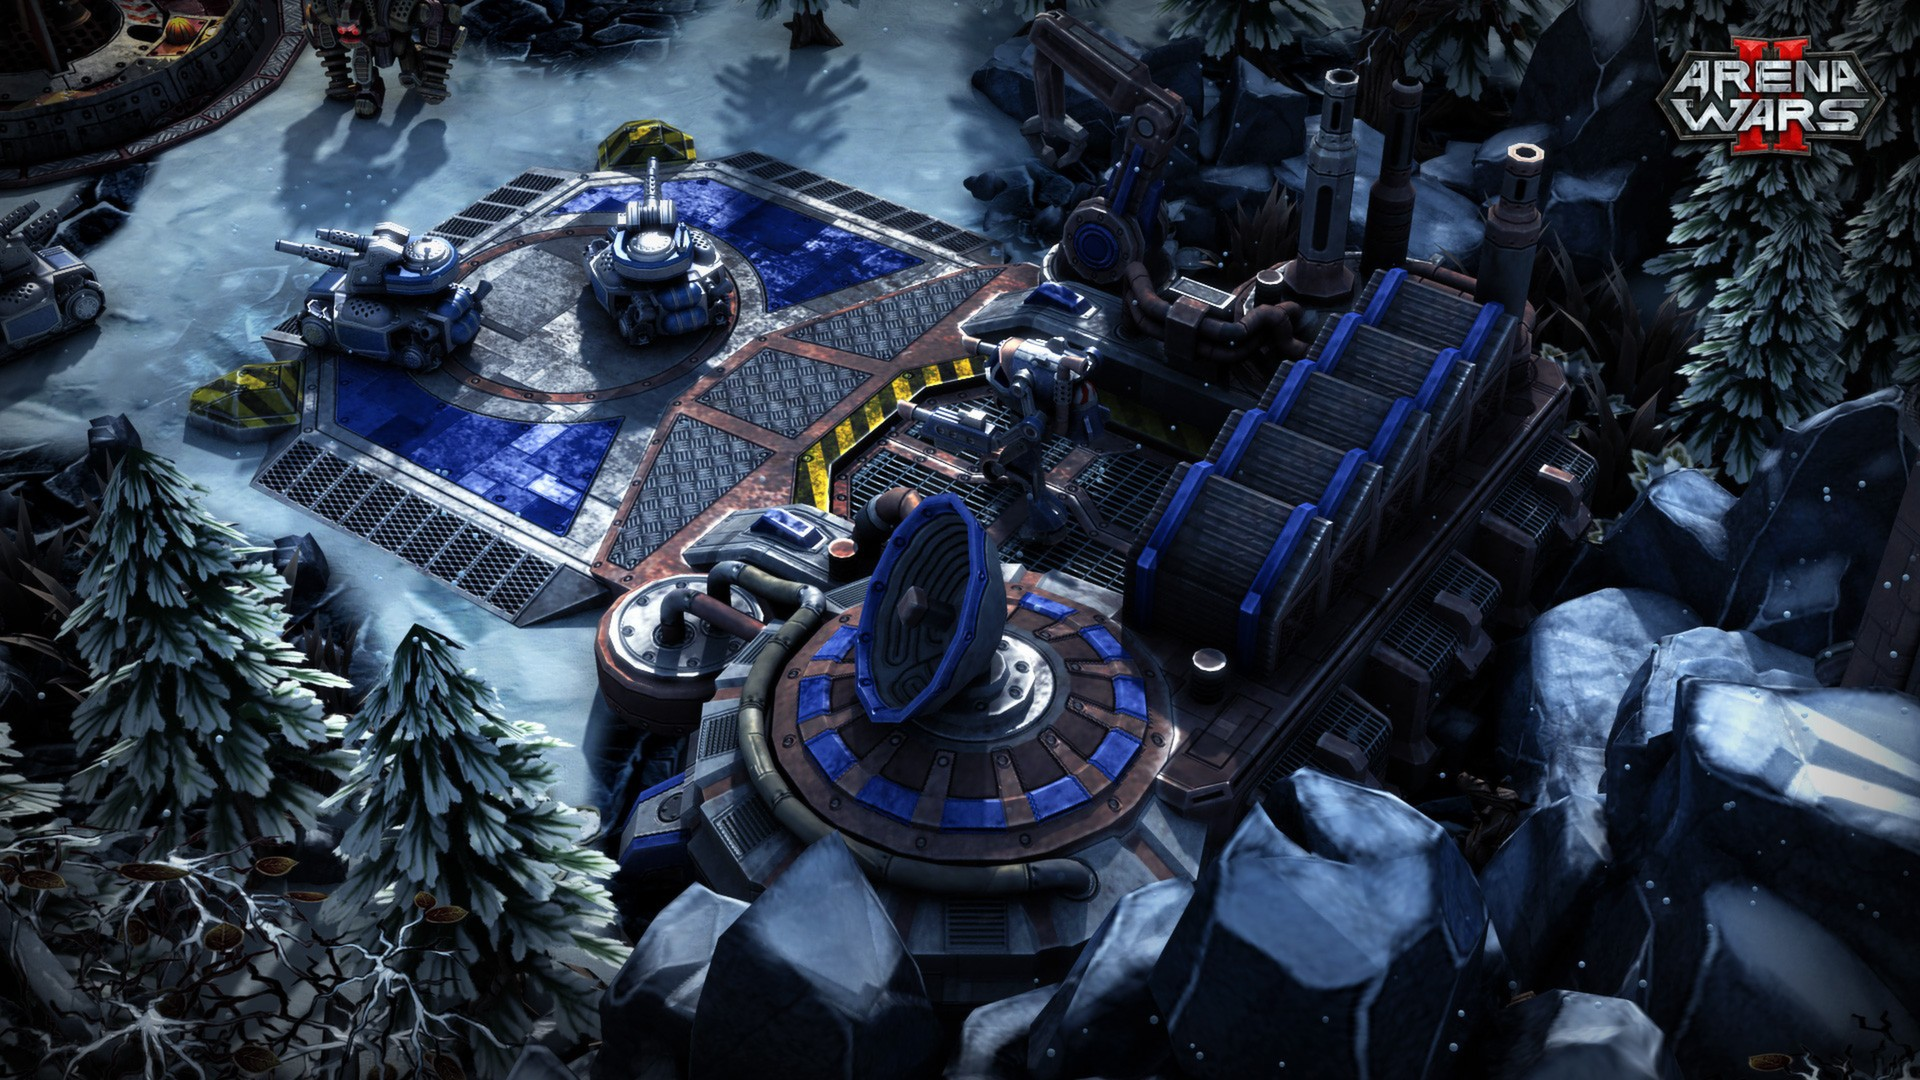 Arena Wars 2: Screenshot aus dem Strategiespiel